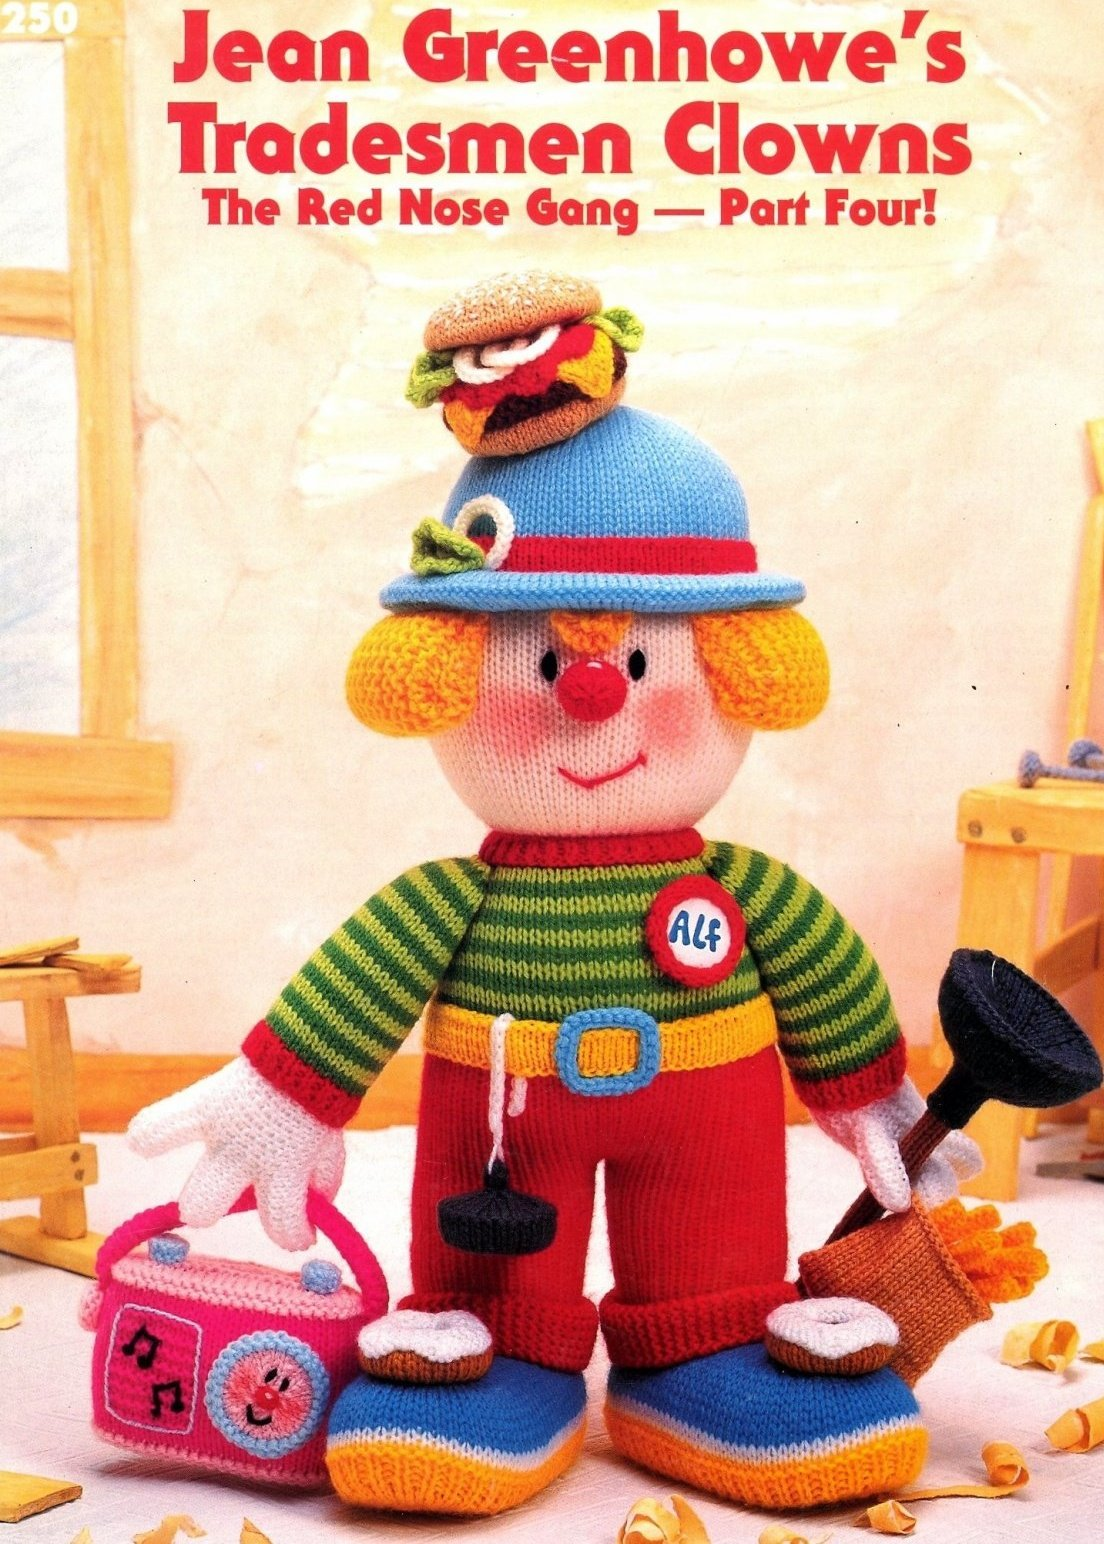 Jean Greenhowe's tradesmen clowns knitting pattern booklet (The red nose gang)- Part Four